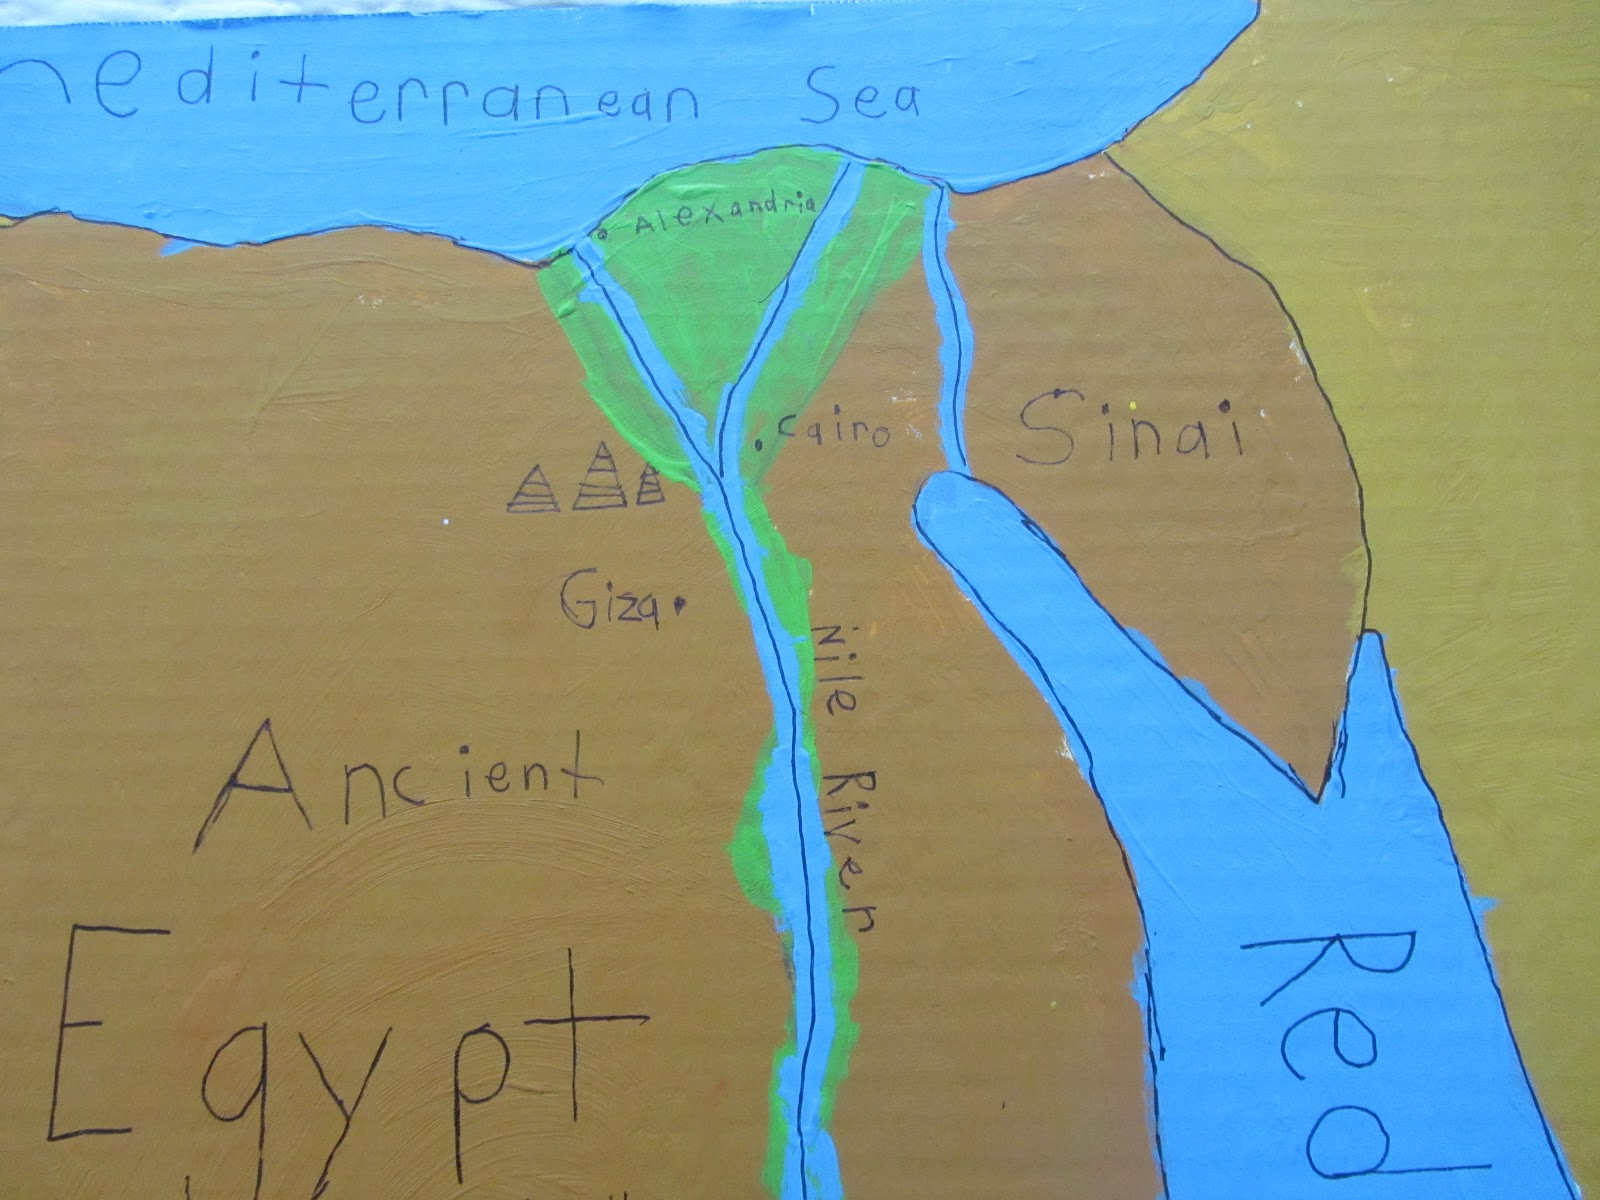 The Unlikely Homeschool Ancient Egypt Unit Study Map of Egypt